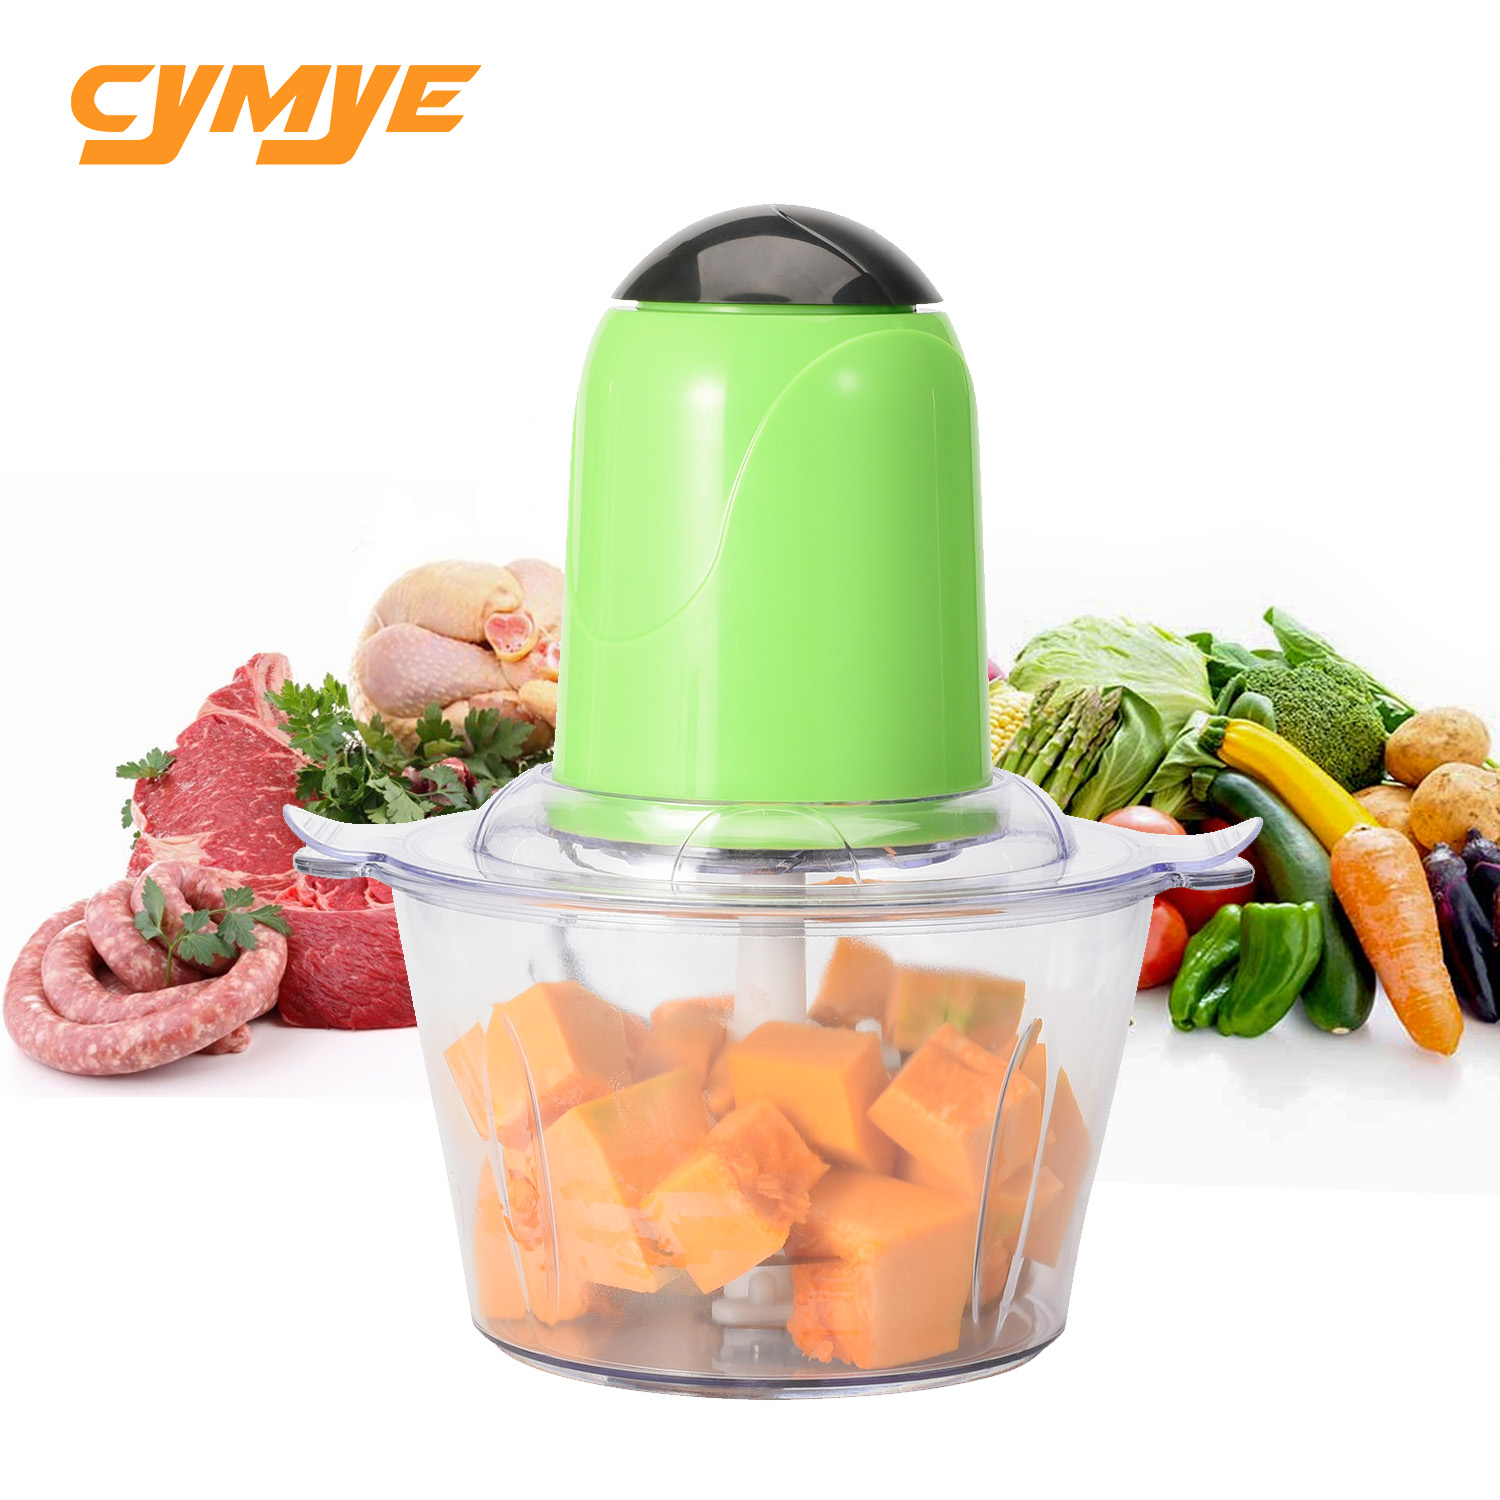 Cymye 2L Electric Stainless Steel Kitchen Meat Grinder Chopper Cocina Shredder